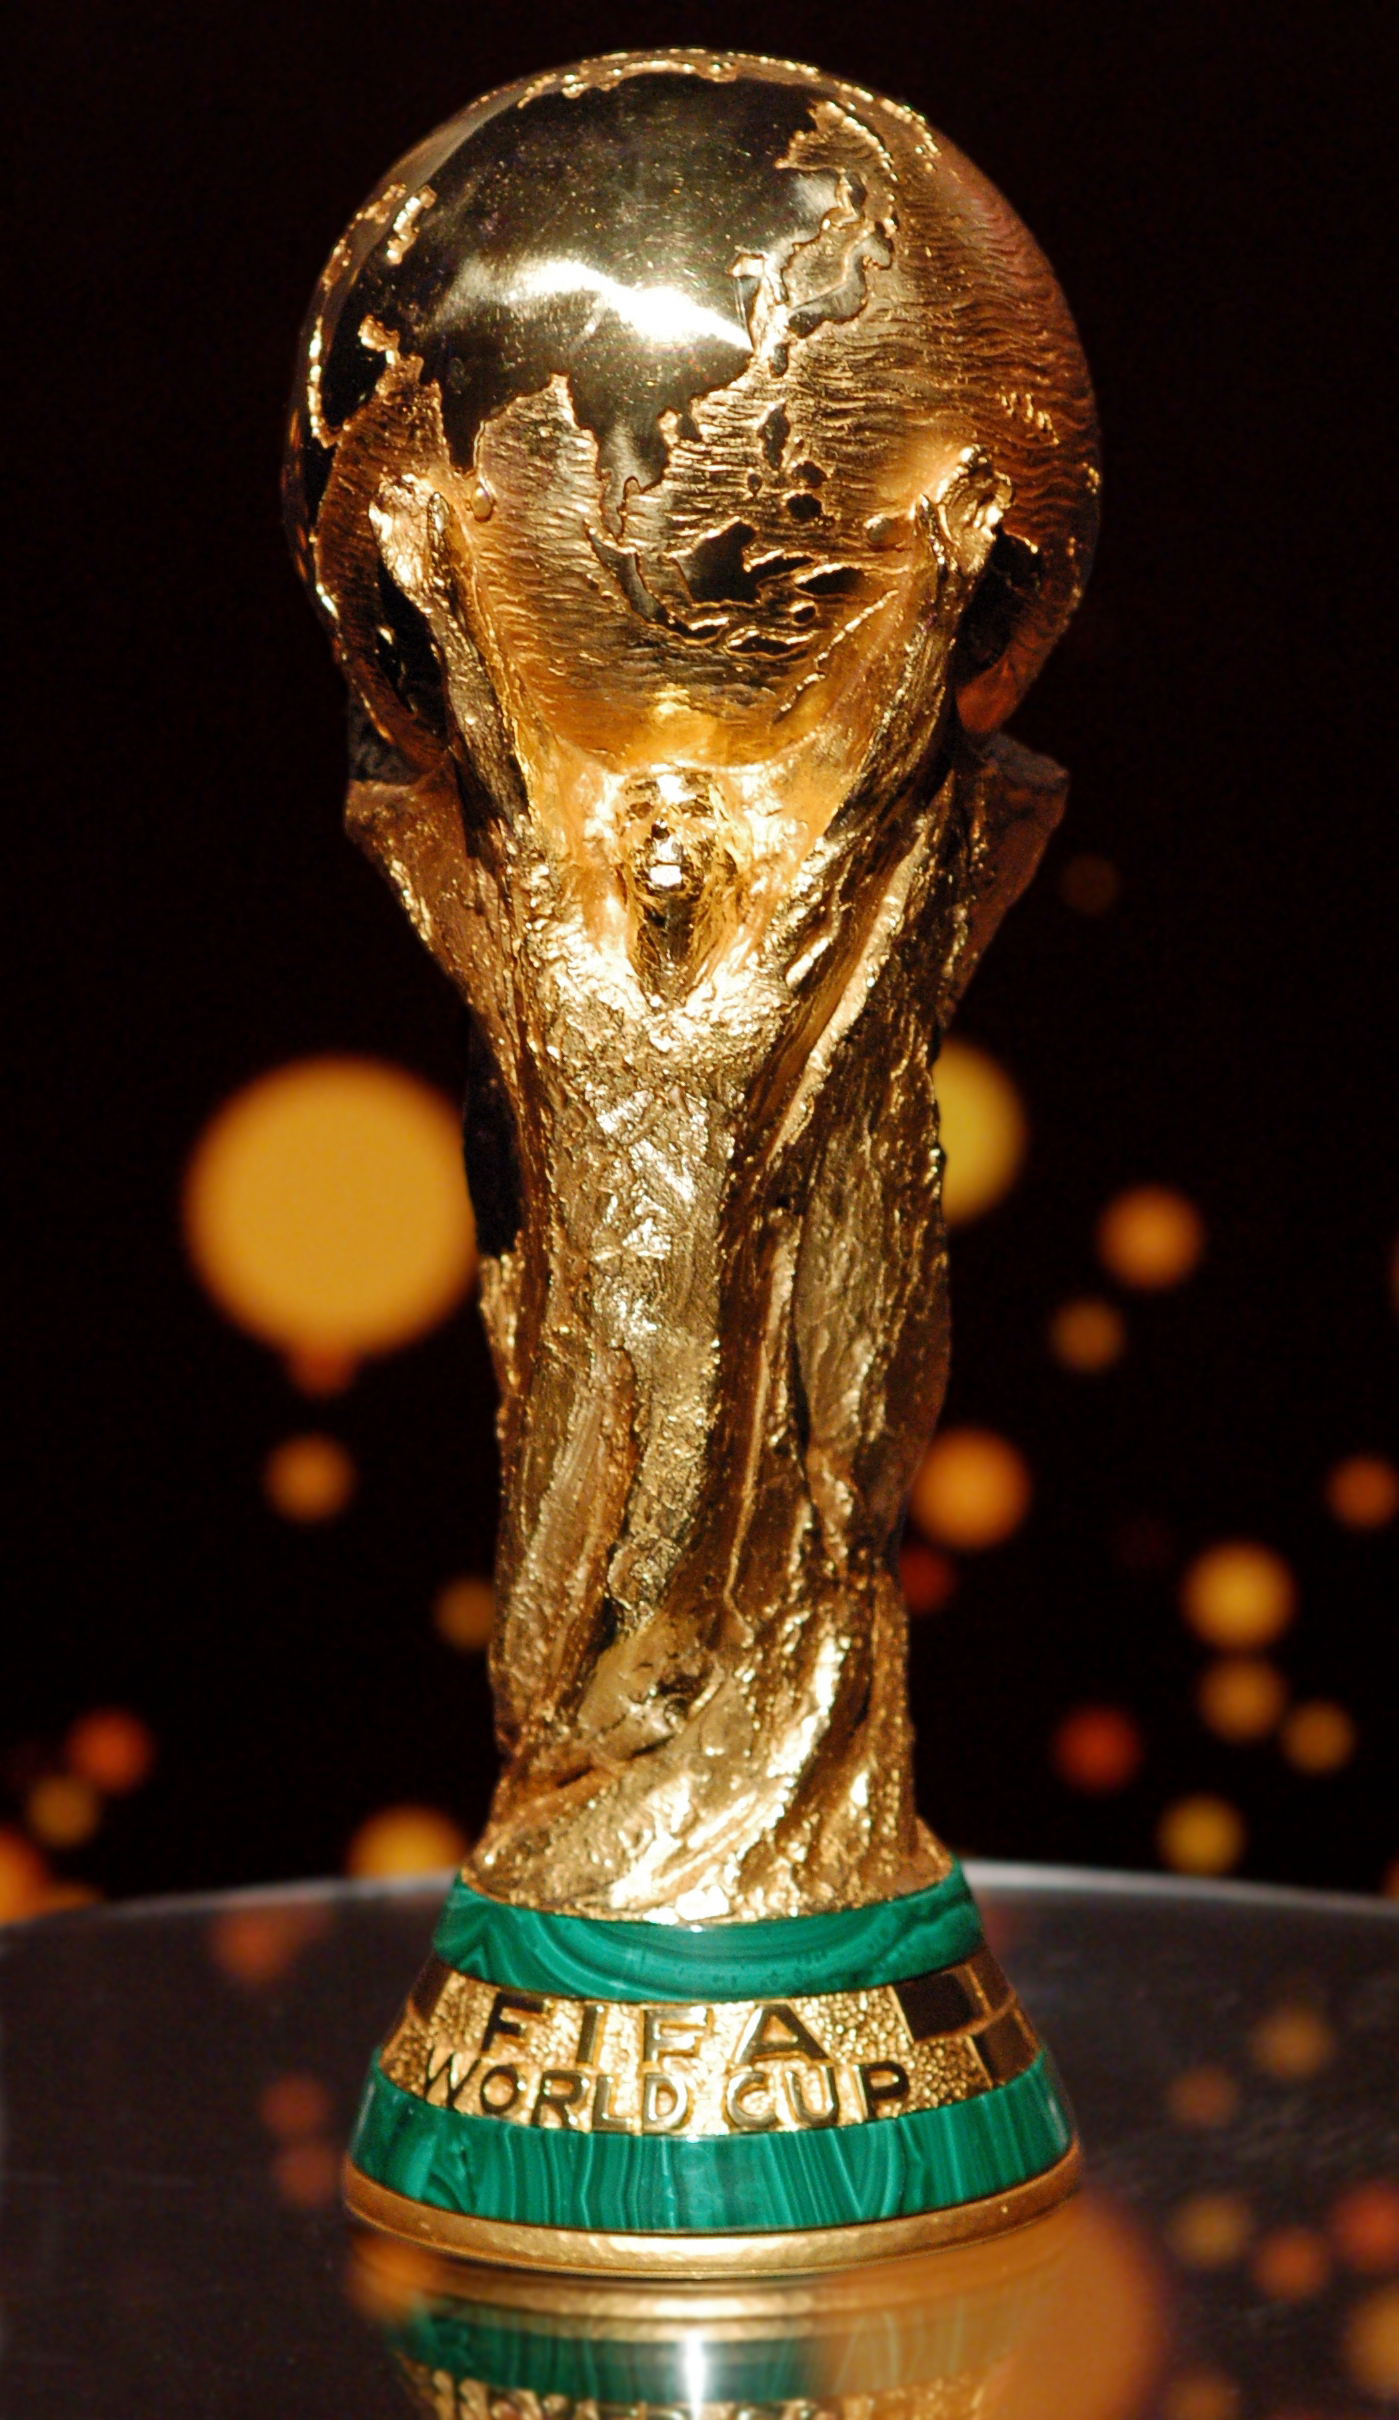 Going To A World Cup Final Fifa Worldcup Football Soccer World Cup Trophy World Cup World Cup Match